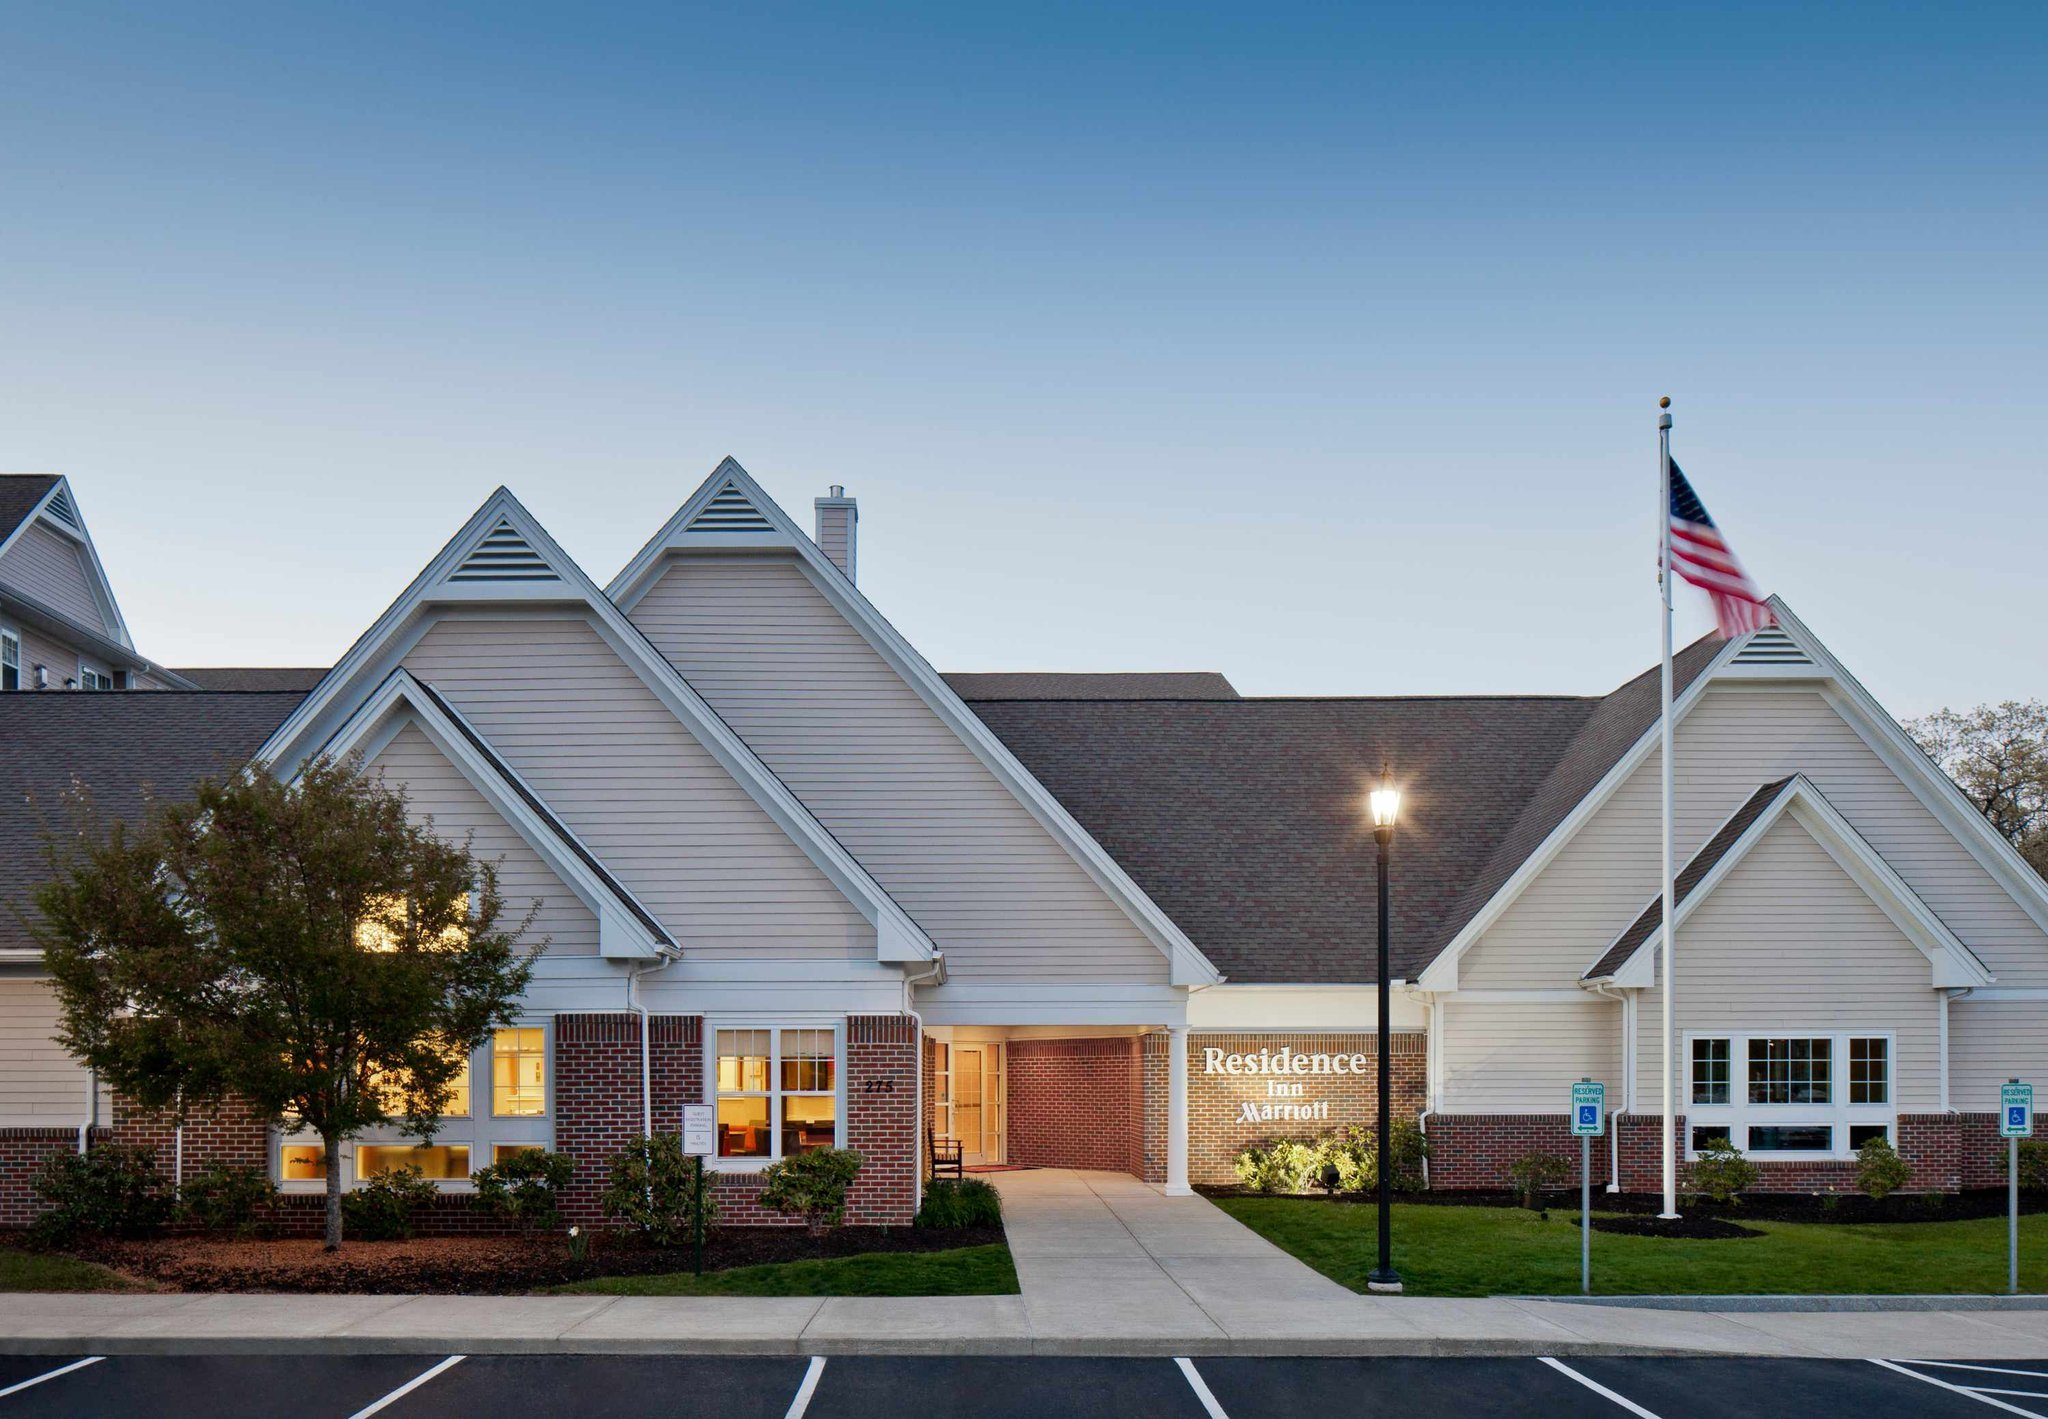 Residence Inn Boston Norwood/Canton